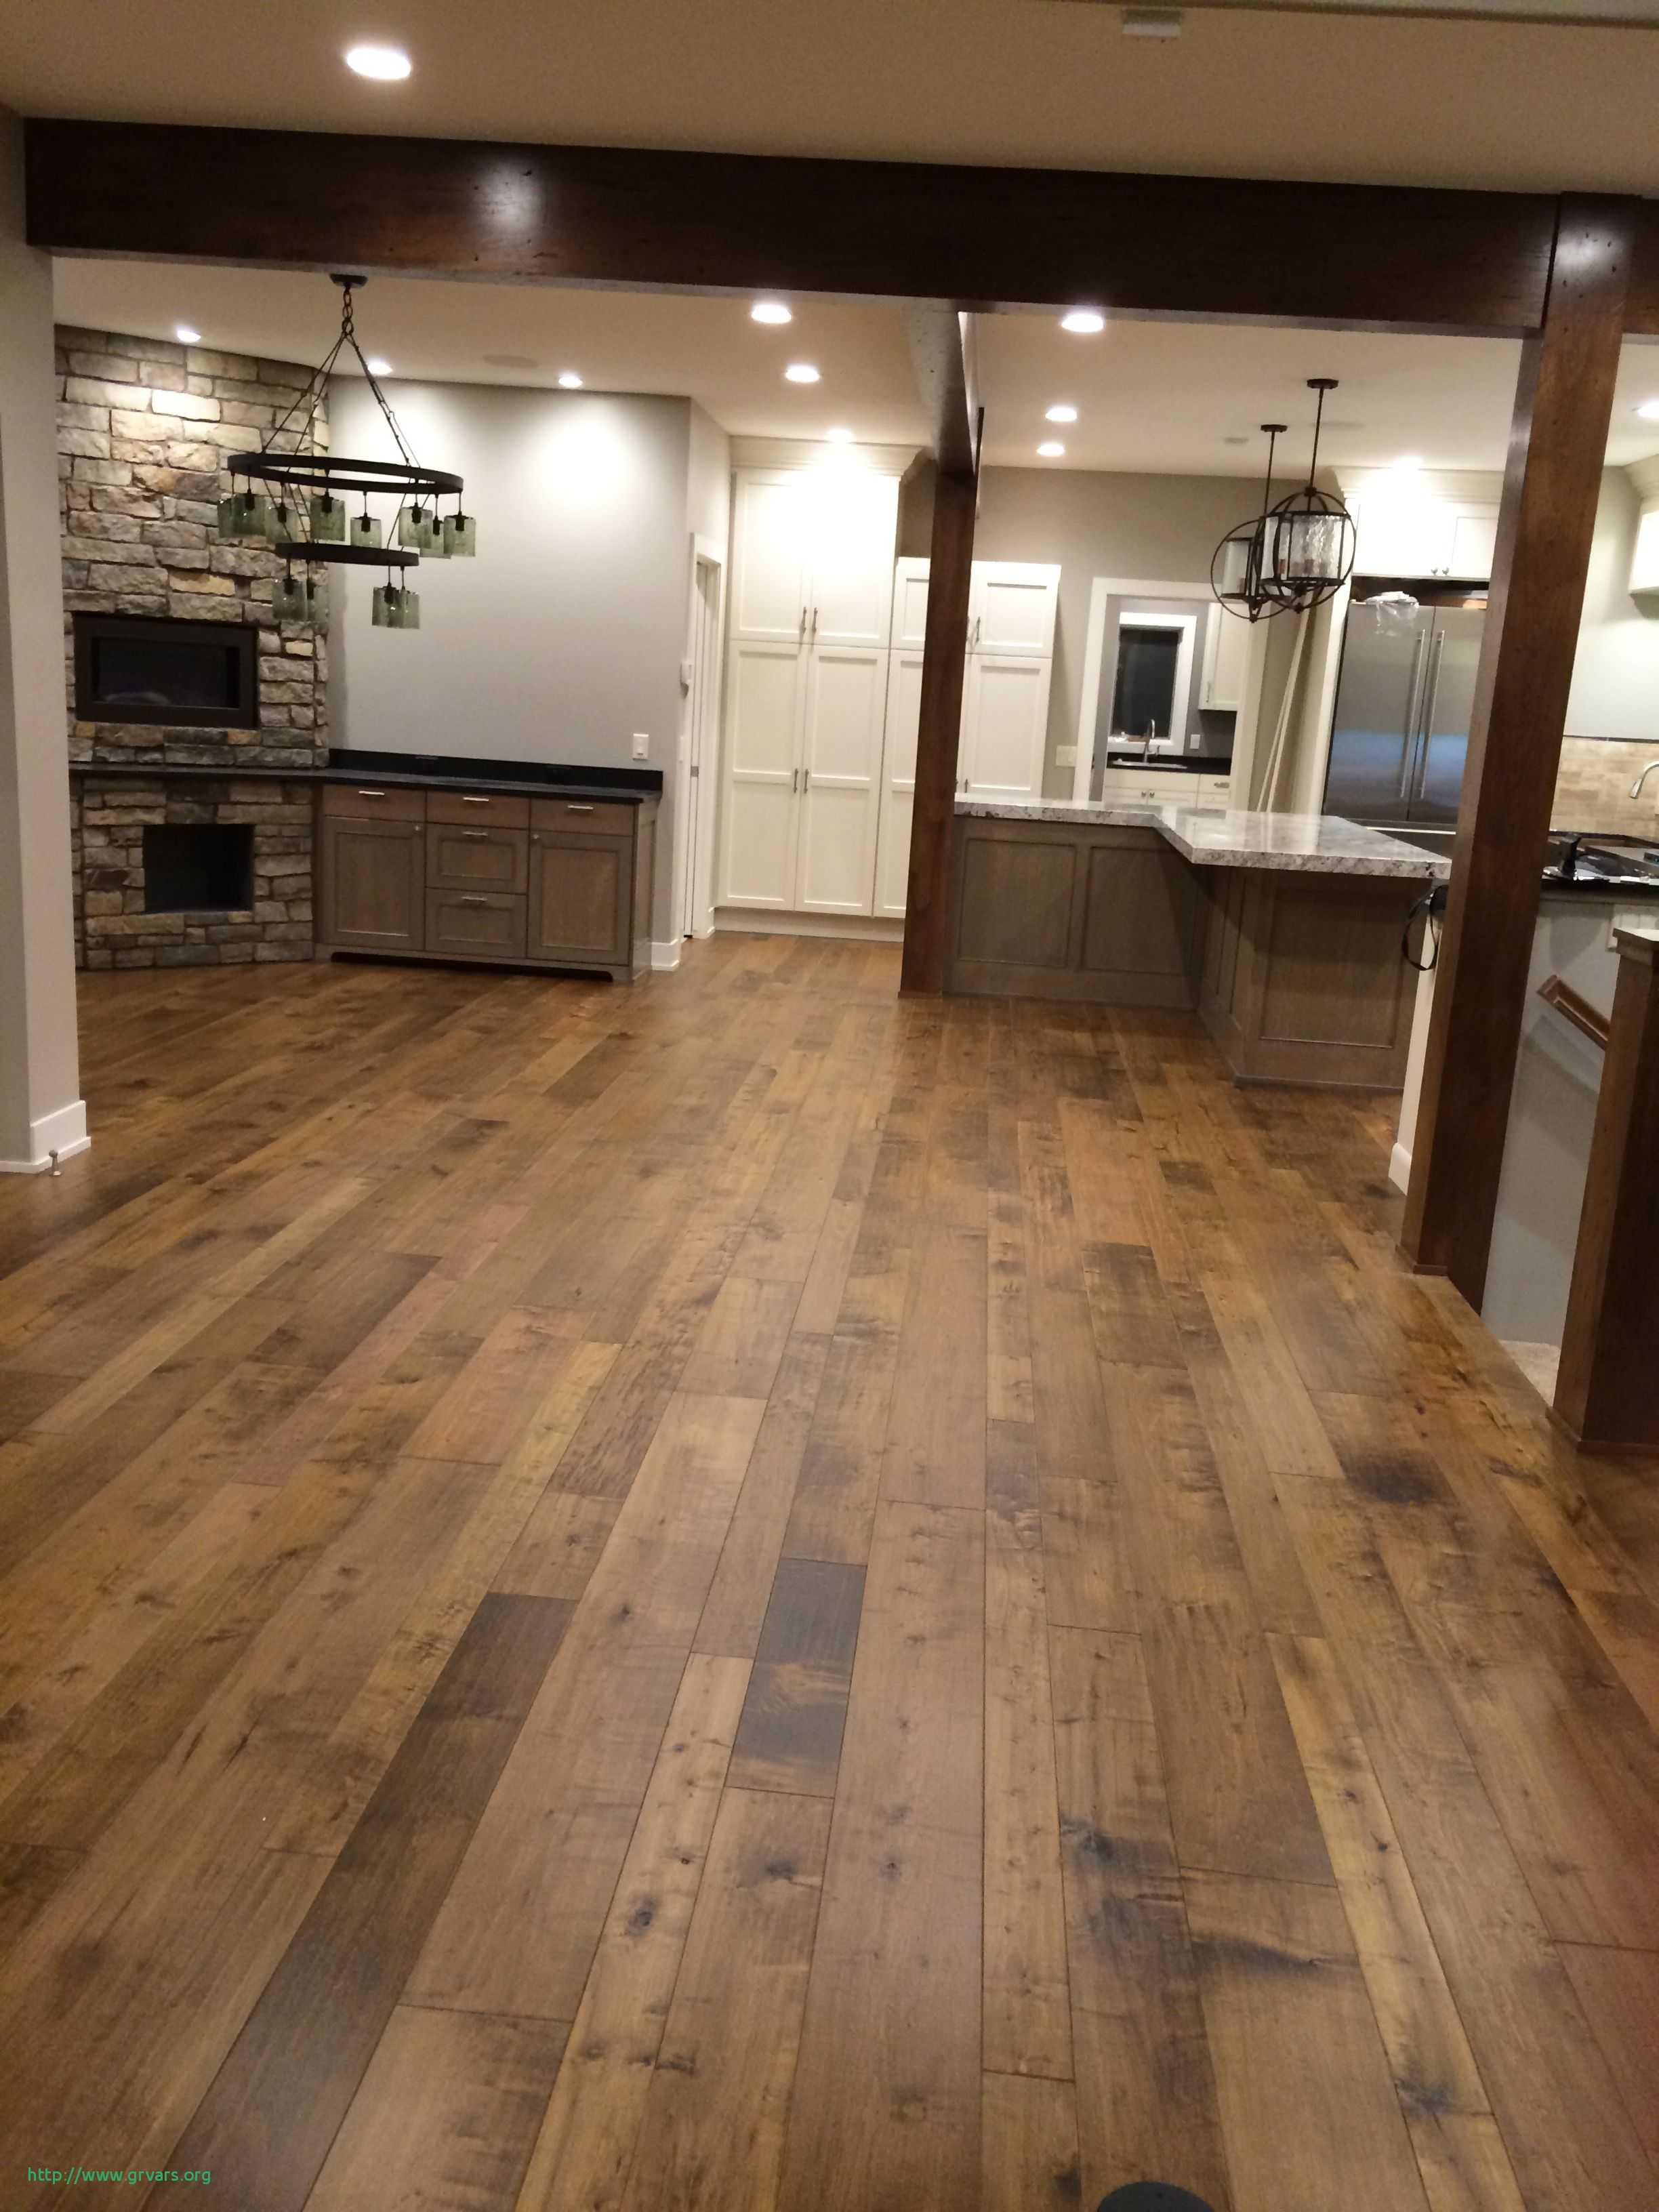 how to install floating engineered hardwood flooring of 15 a‰lagant best way to install engineered wood flooring ideas blog for 15 photos of the 15 a‰lagant best way to install engineered wood flooring